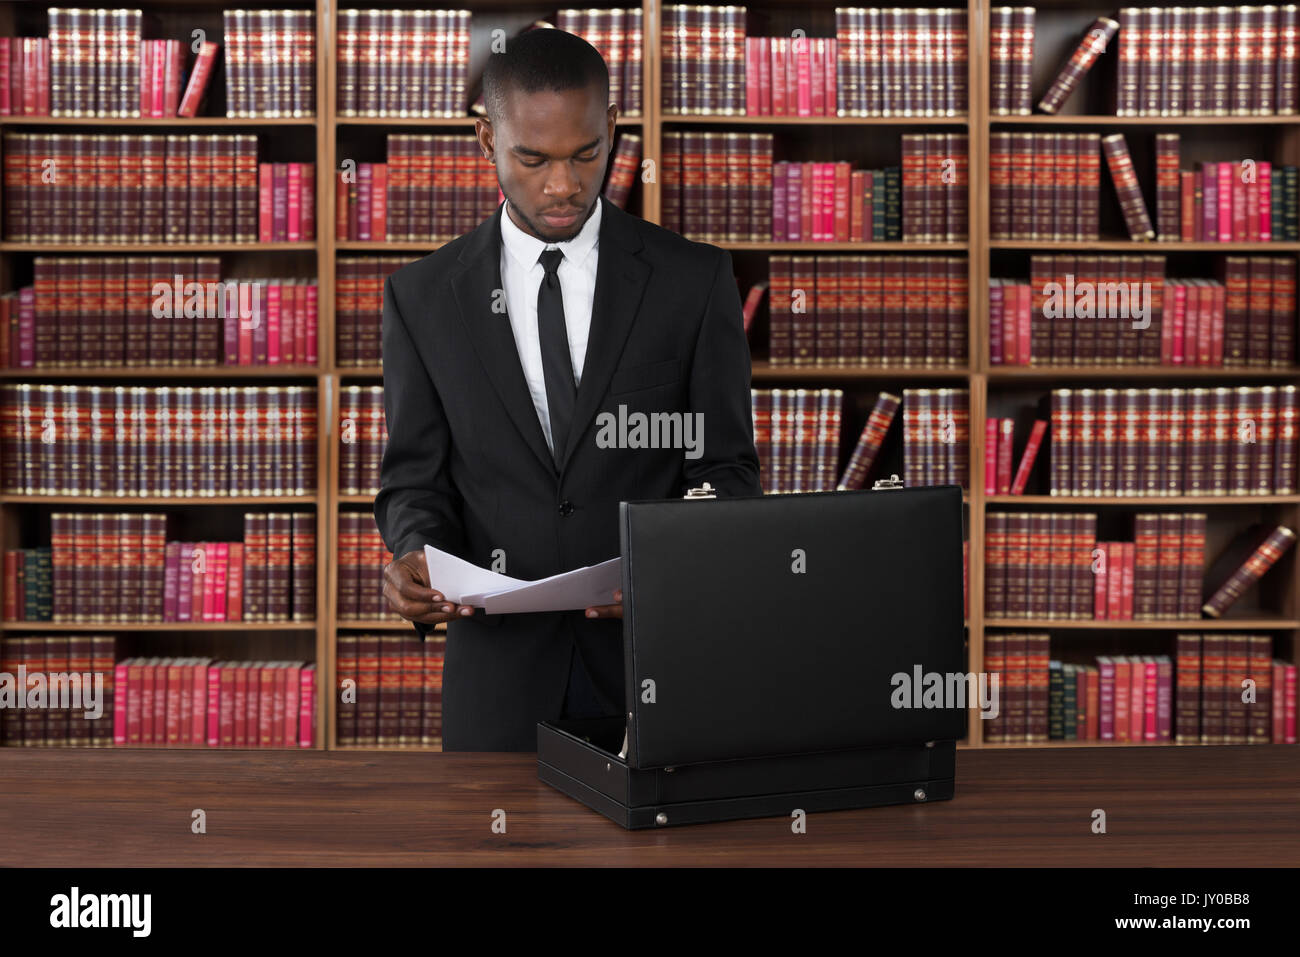 Male Lawyer With Papers And Briefcase At Desk In Office - Stock Image